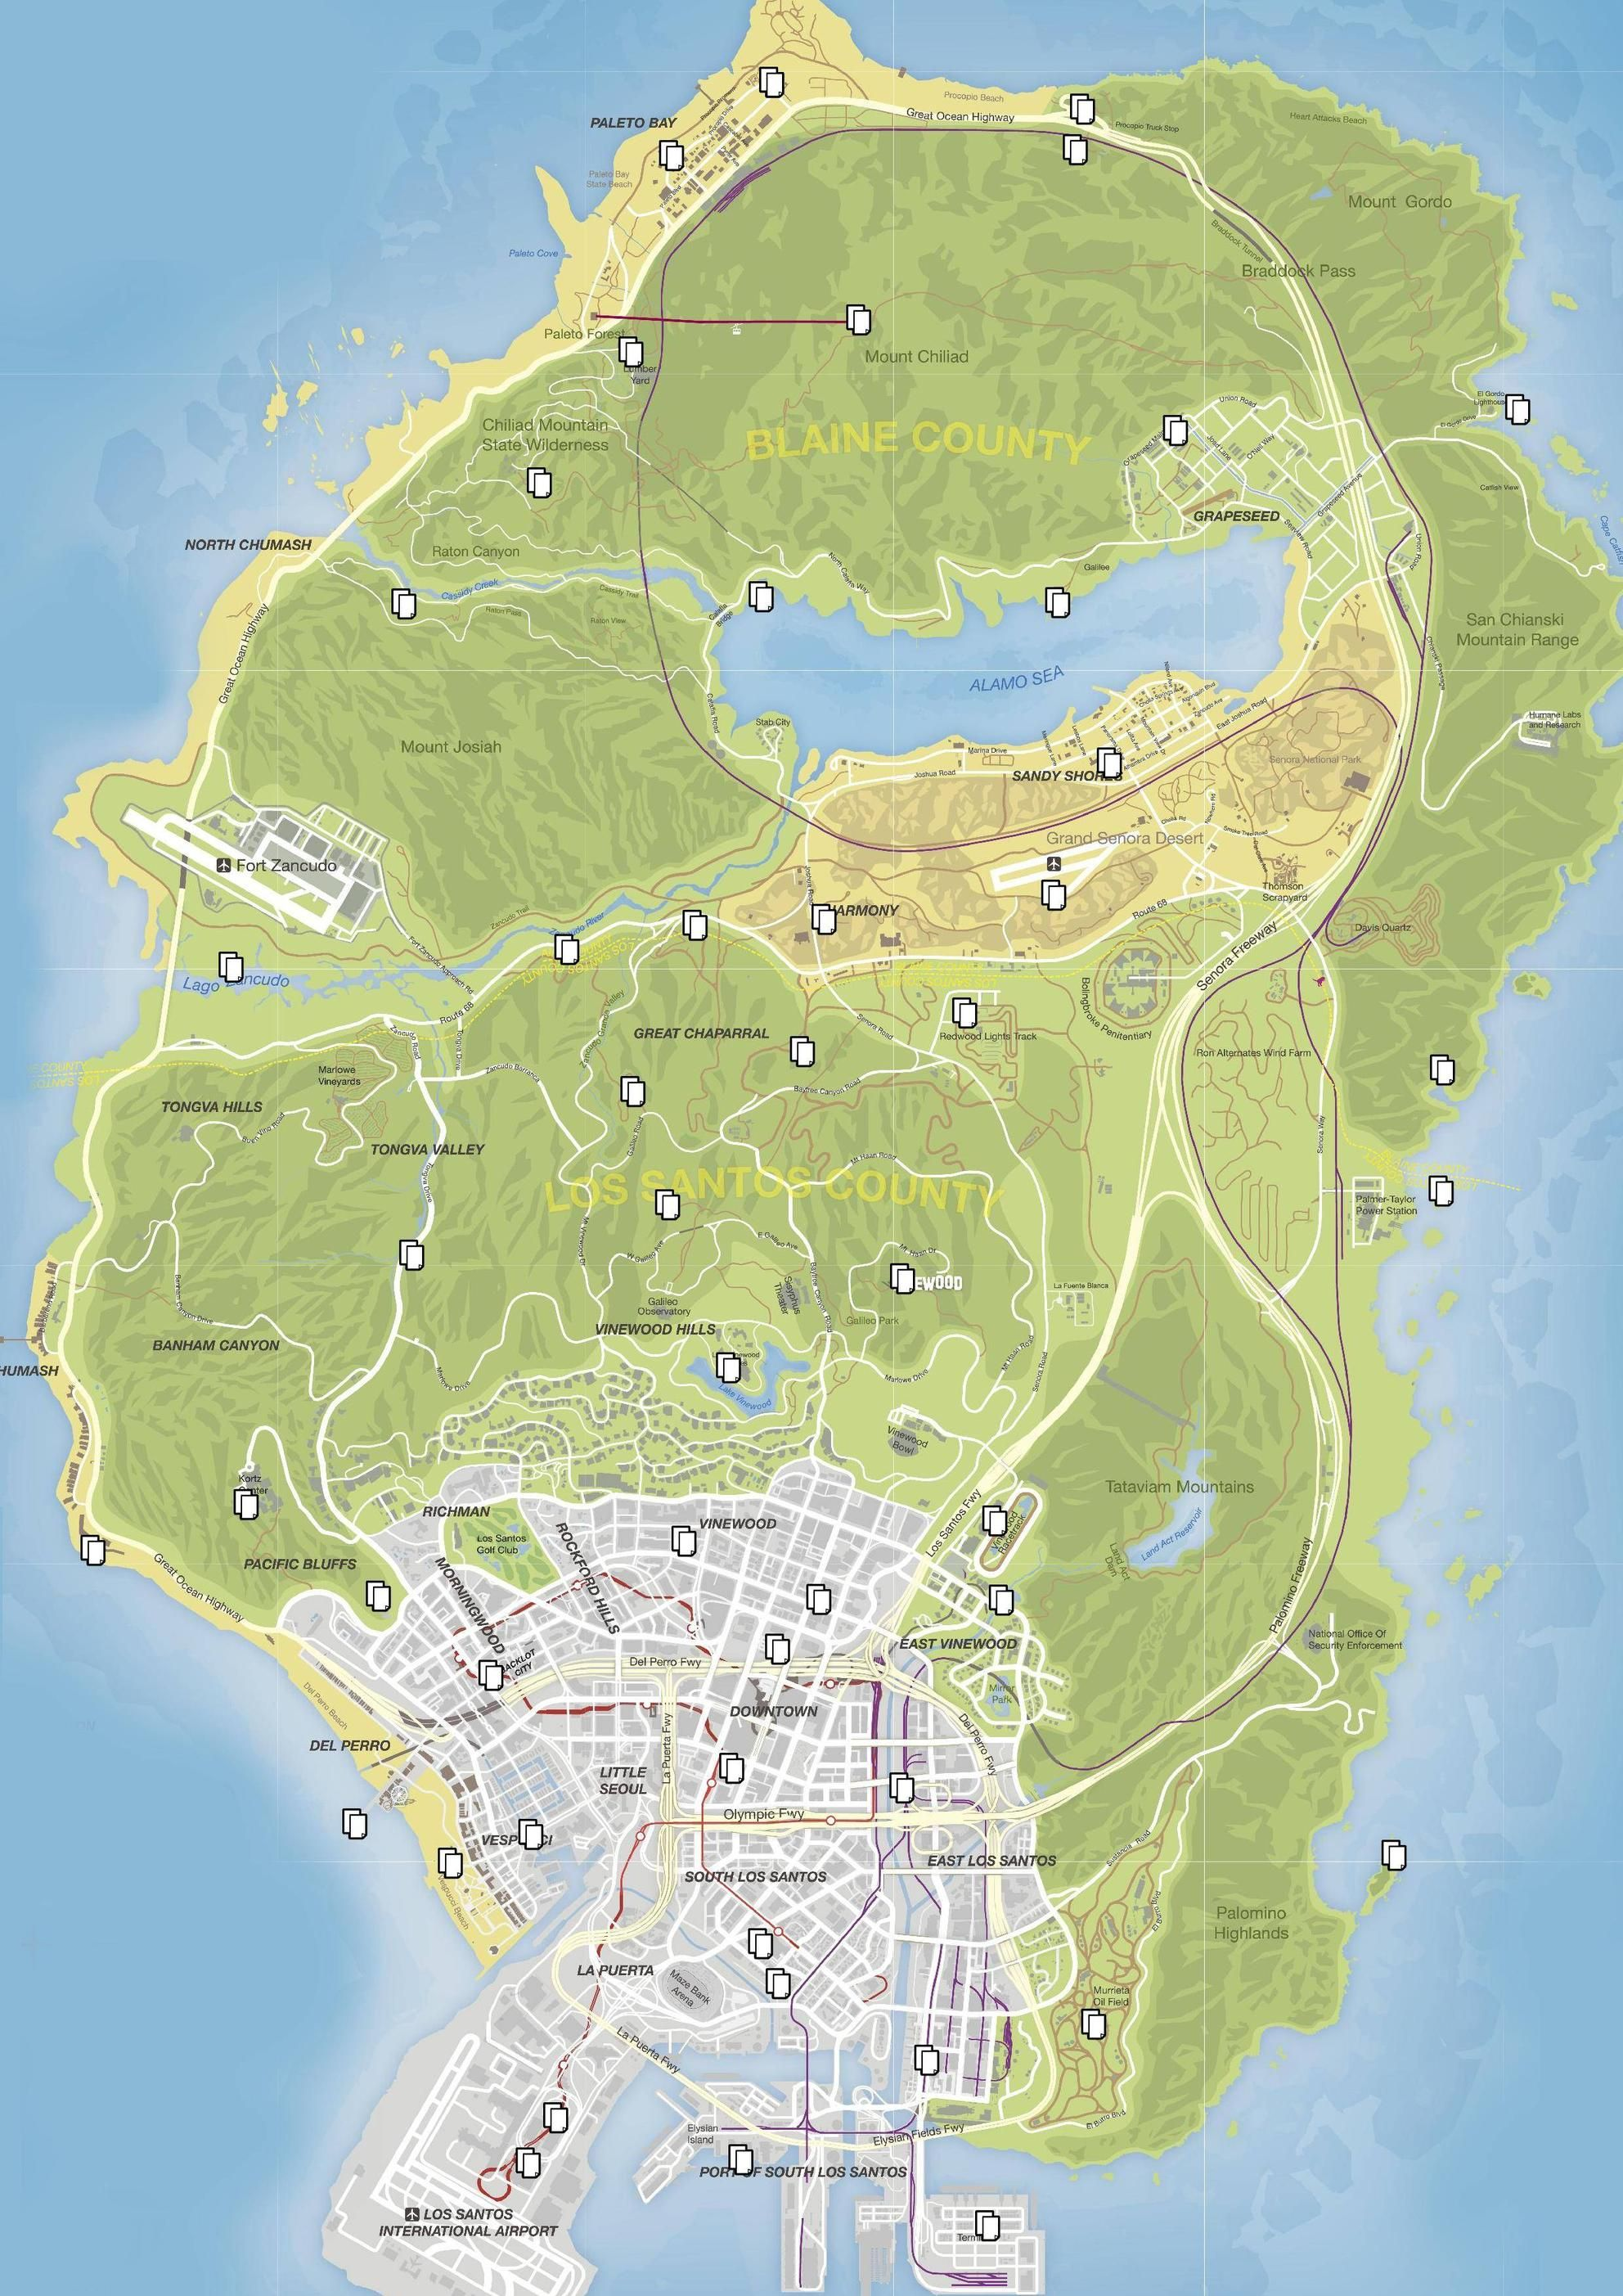 GTAV letter locations map | I'm a Freak | Ship map, Map, Location map